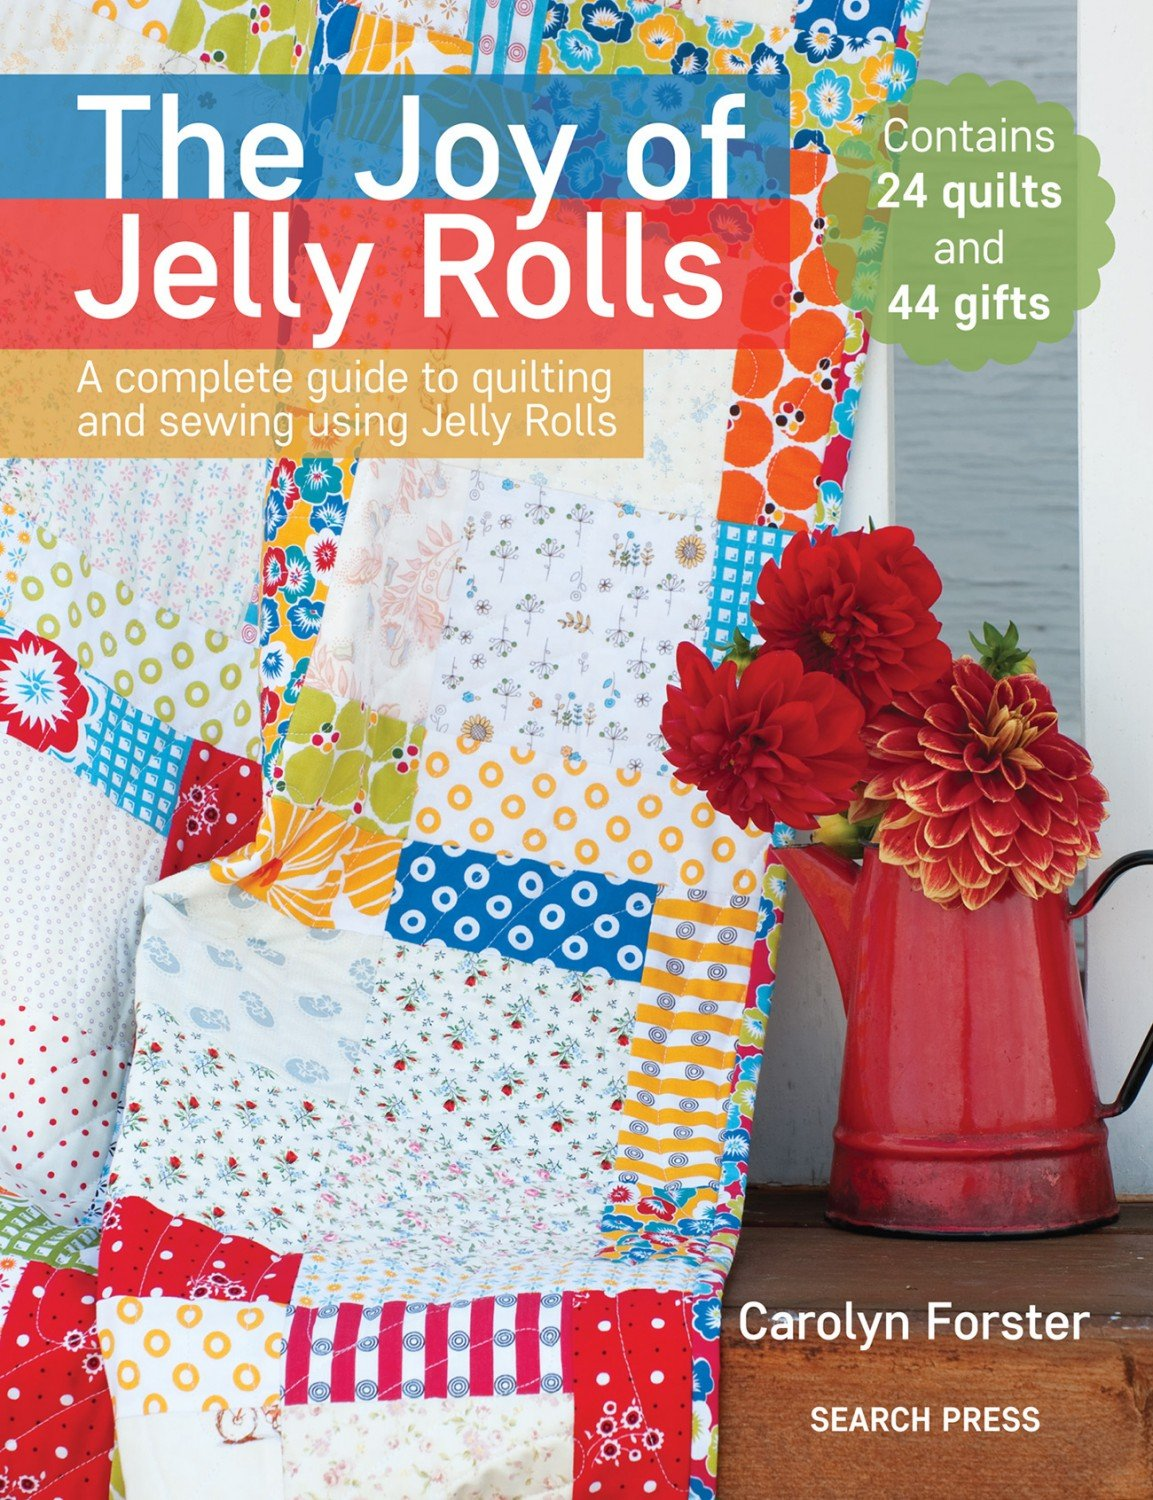 The Joy of Jelly Rolls by Carolyn Forster SP-470